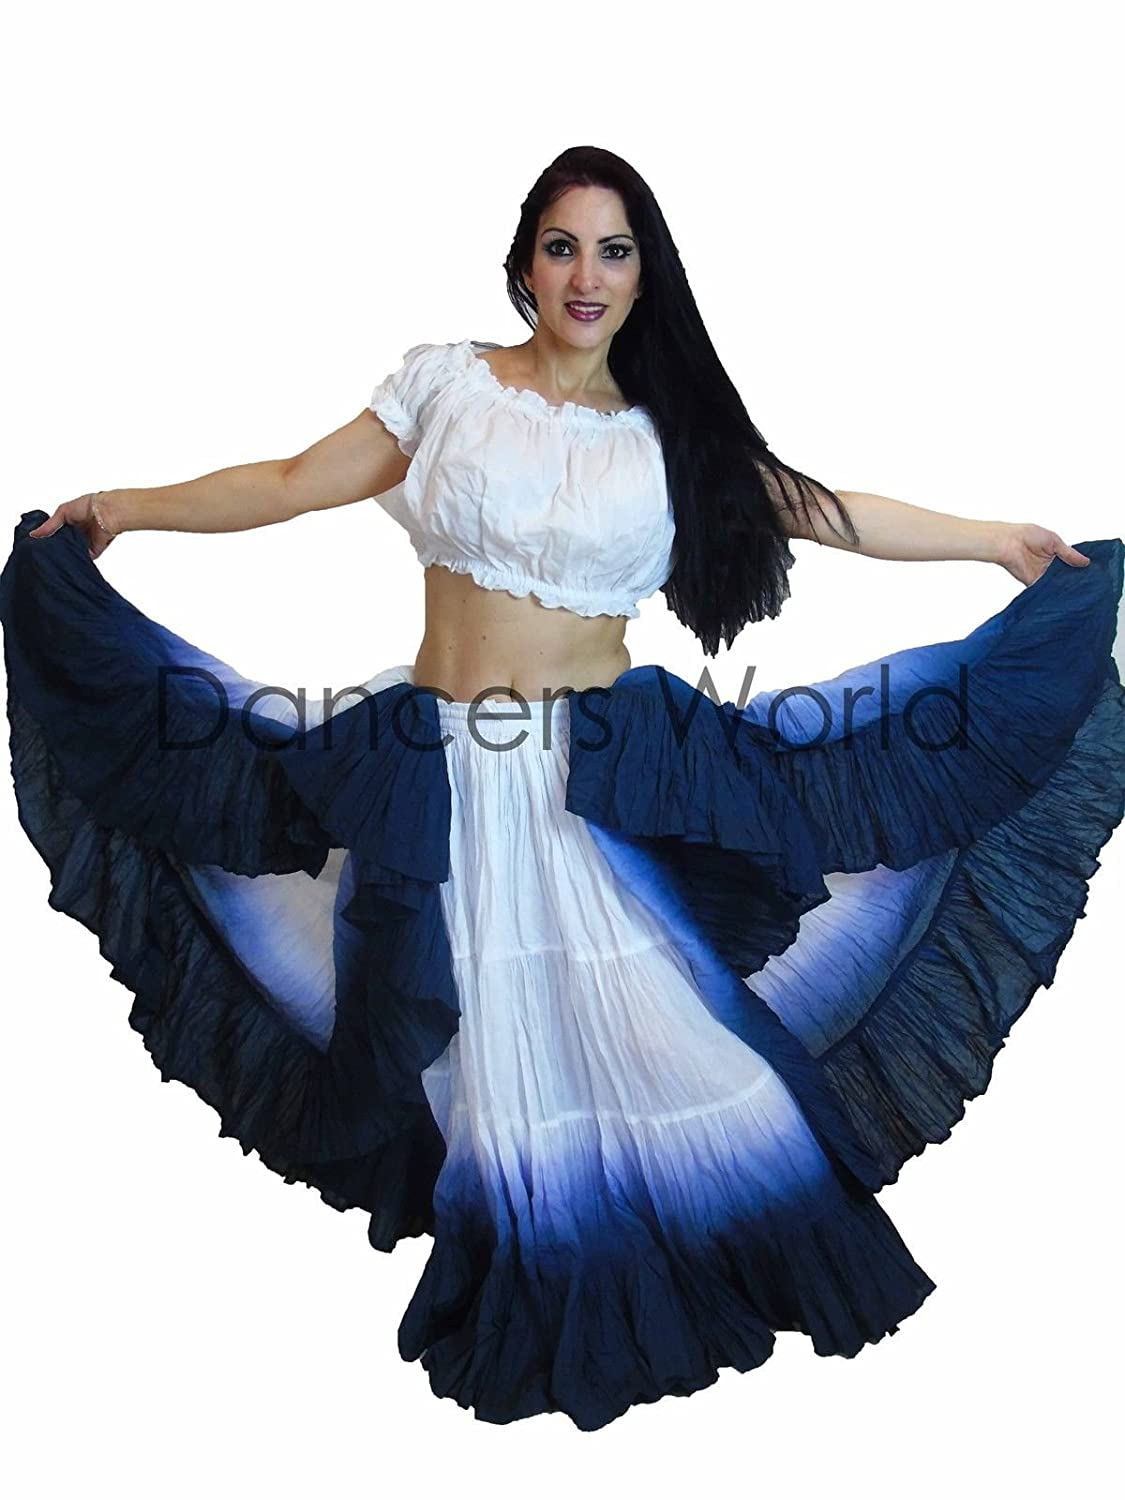 25 Yard Yards Tribal Gypsy Cotton 2pc Belly Dancing Dance Skirt & Top ATS SHADED DESIGN - SIZE US-CANADA 10 - 22 (2) Dancers World Ltd (UK Seller)